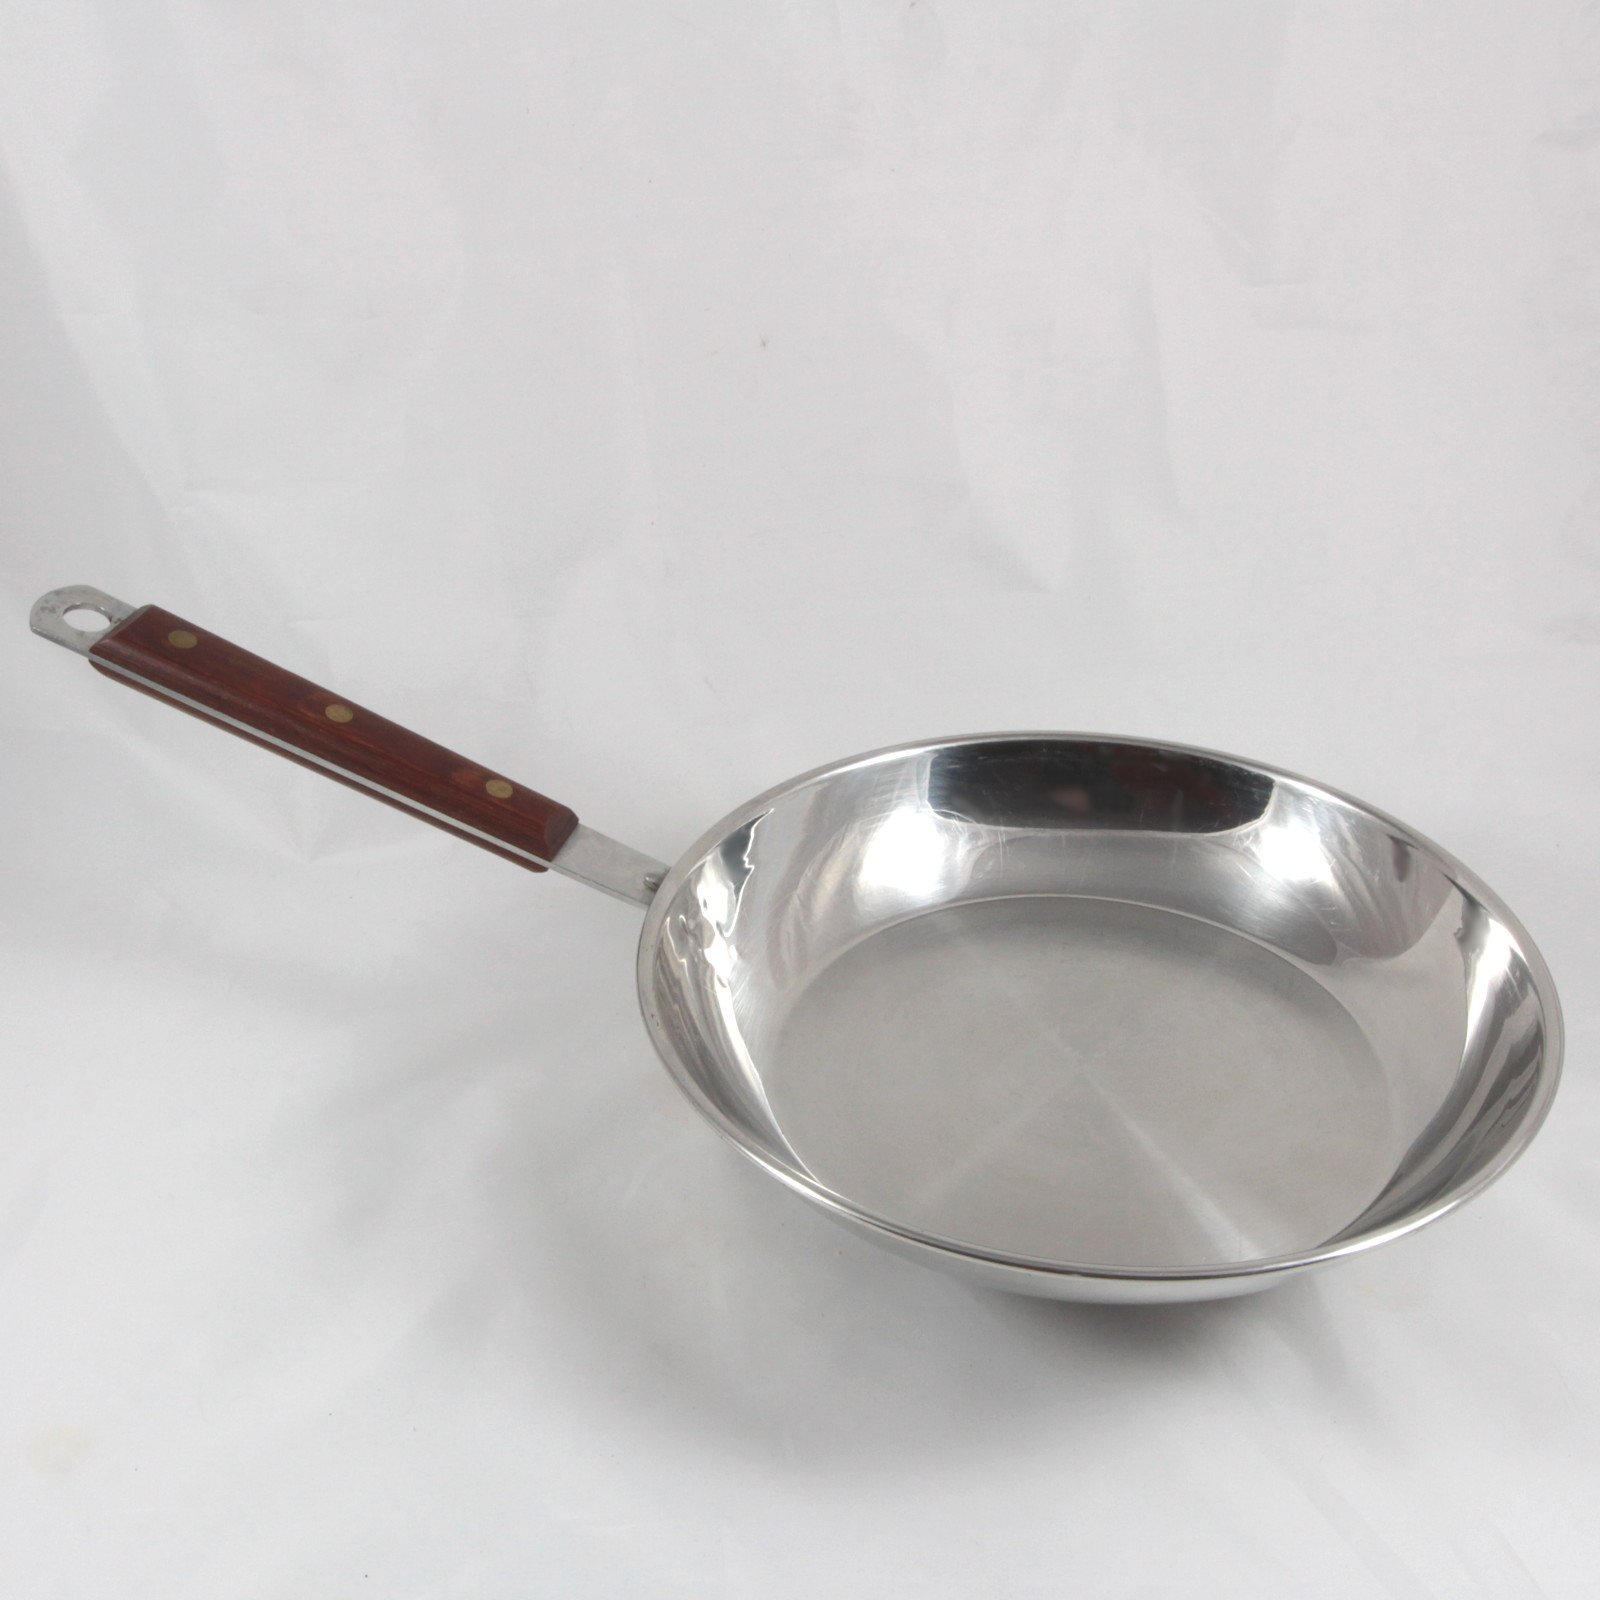 Vintage Cuisinarts Classic Cookware Stainless Steel Wood Handle, Skillet, 10-Inch